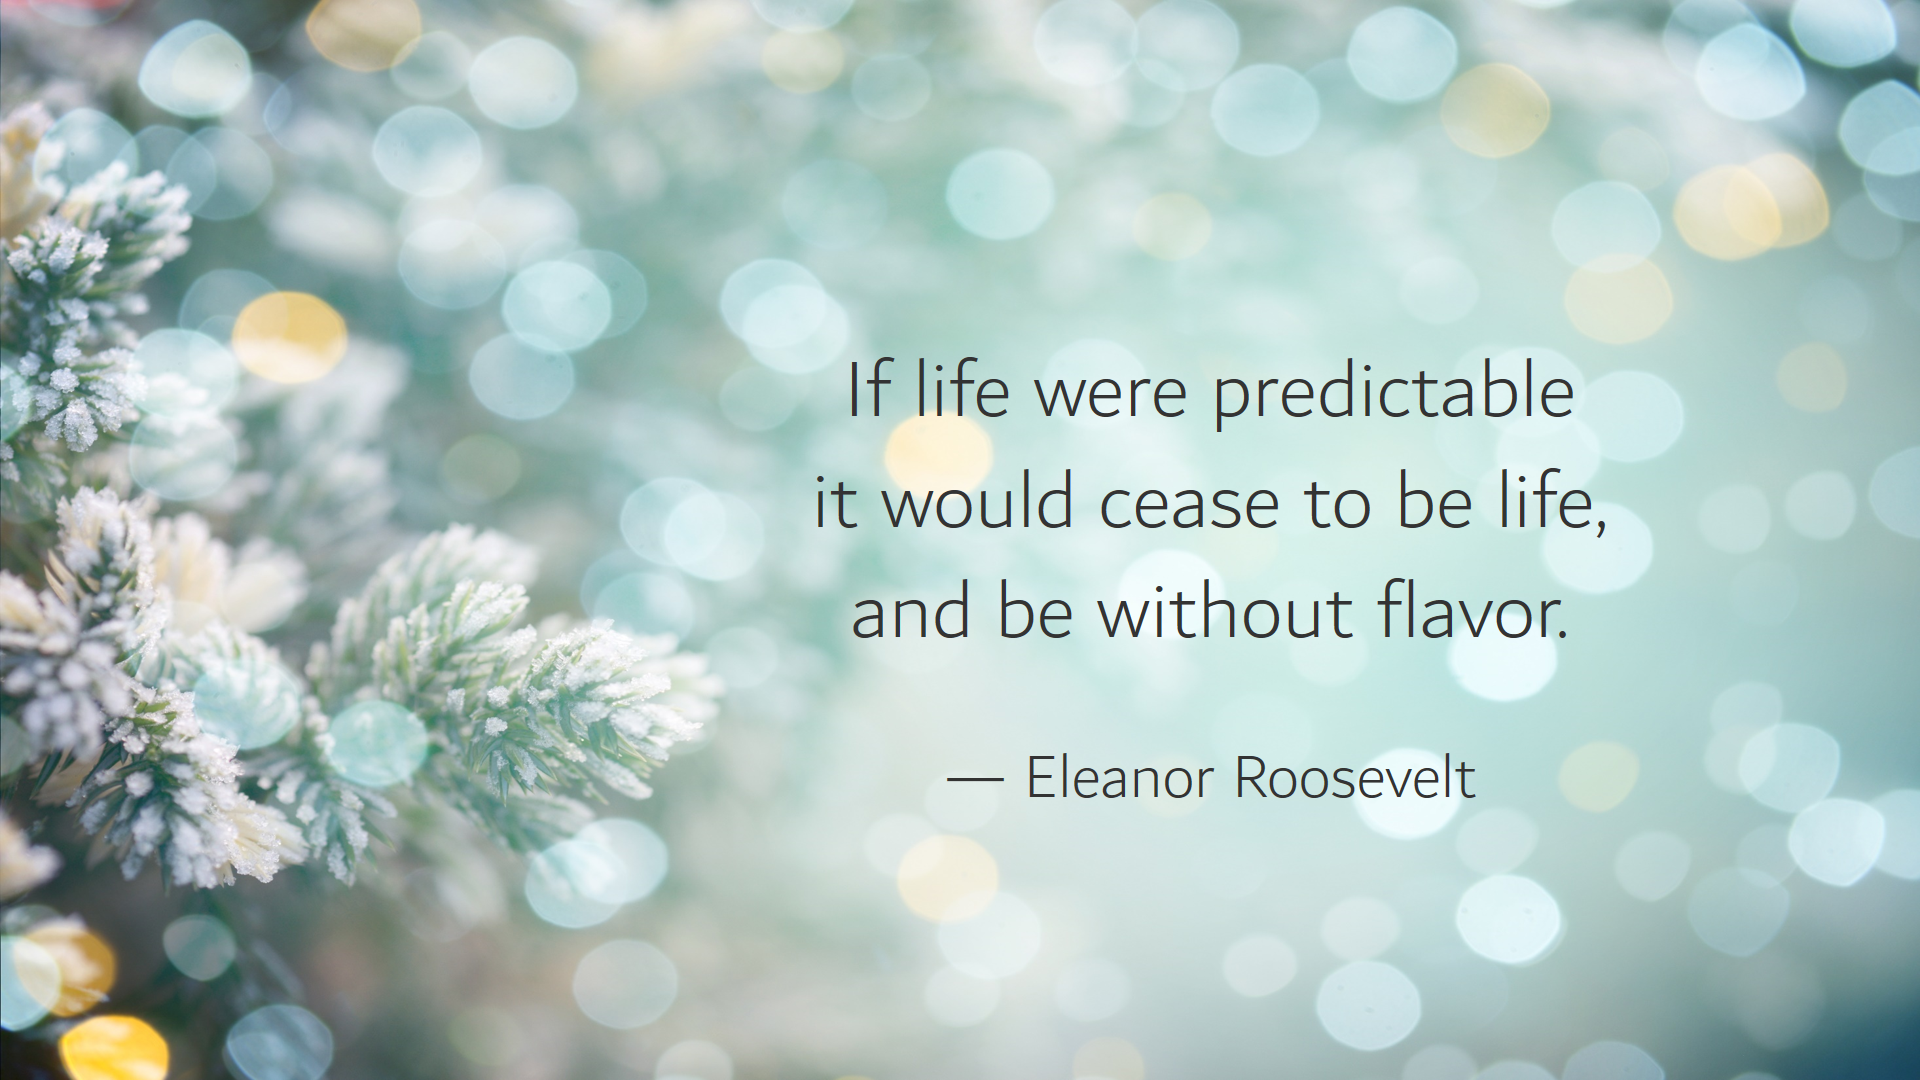 """""""If life were predictable it would cease to be life, and be without flavor."""" –Eleanor Roosevelt [1920 x 1080]"""